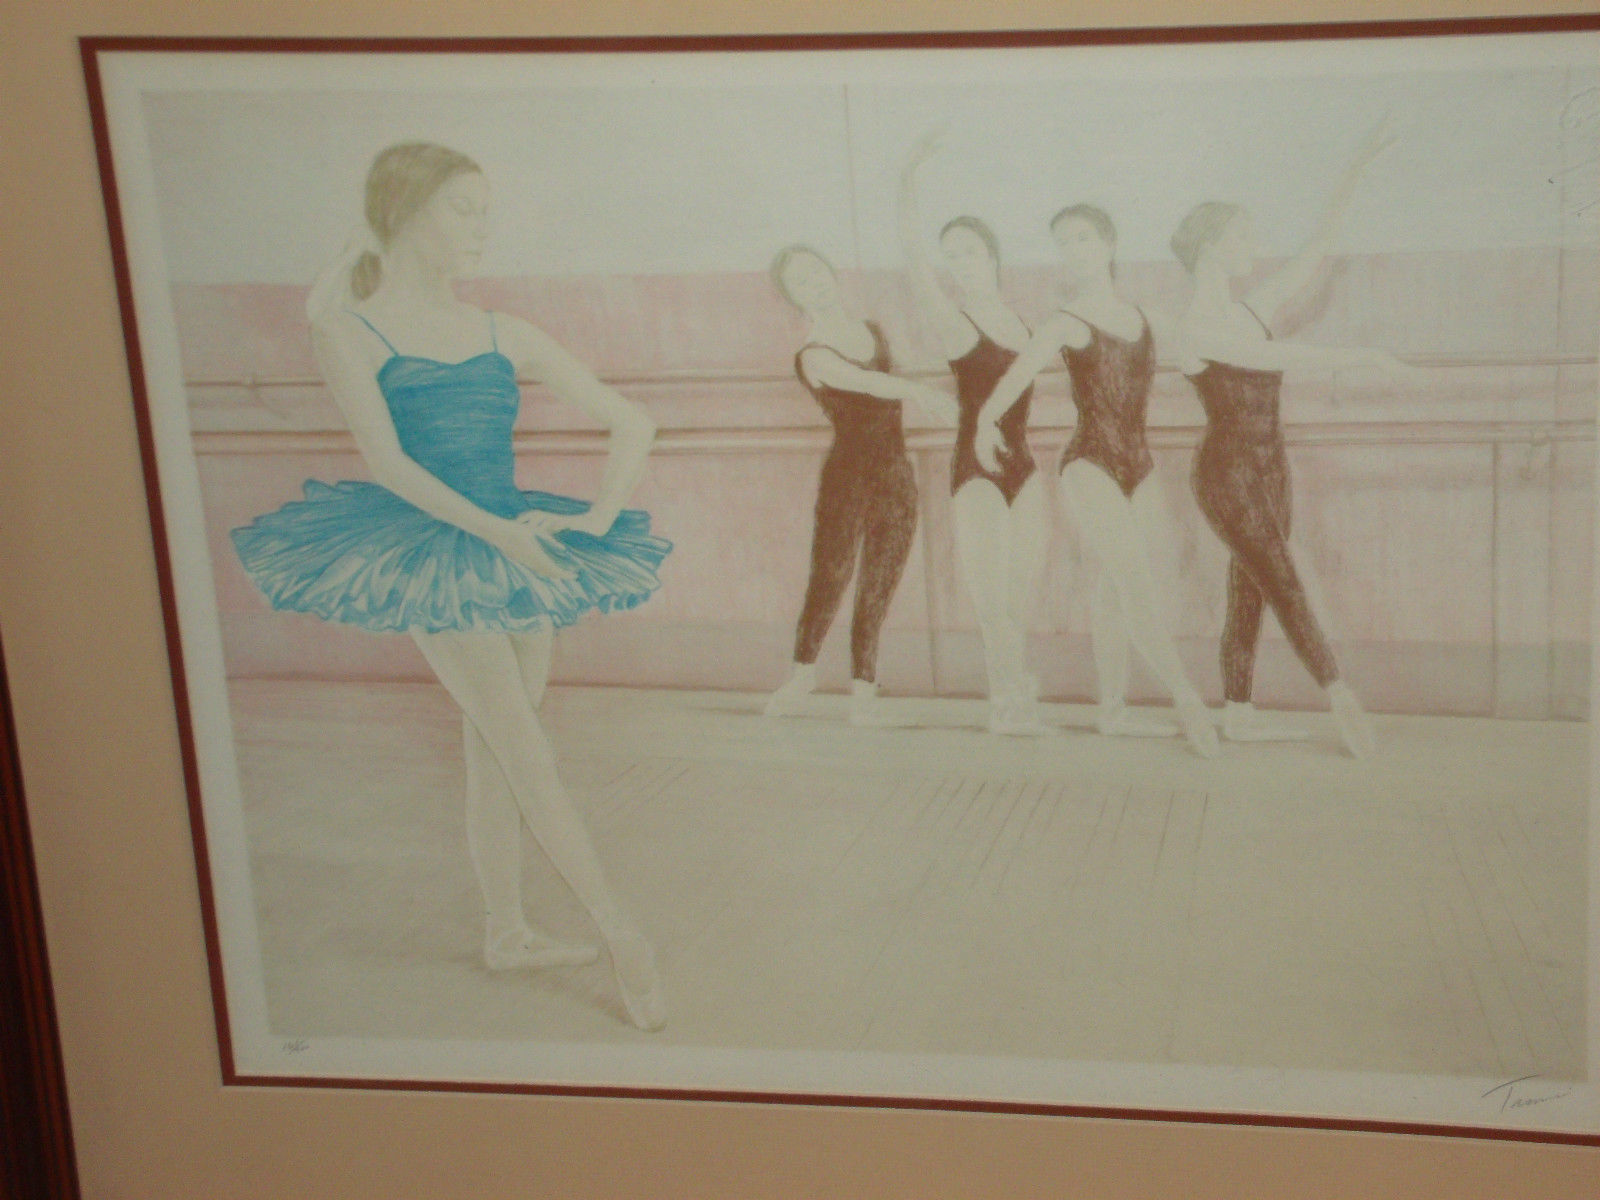 BARRE WORK BY DAVID TAMERIN SIGNED LIMITED EDITION FRAMED W/ COA